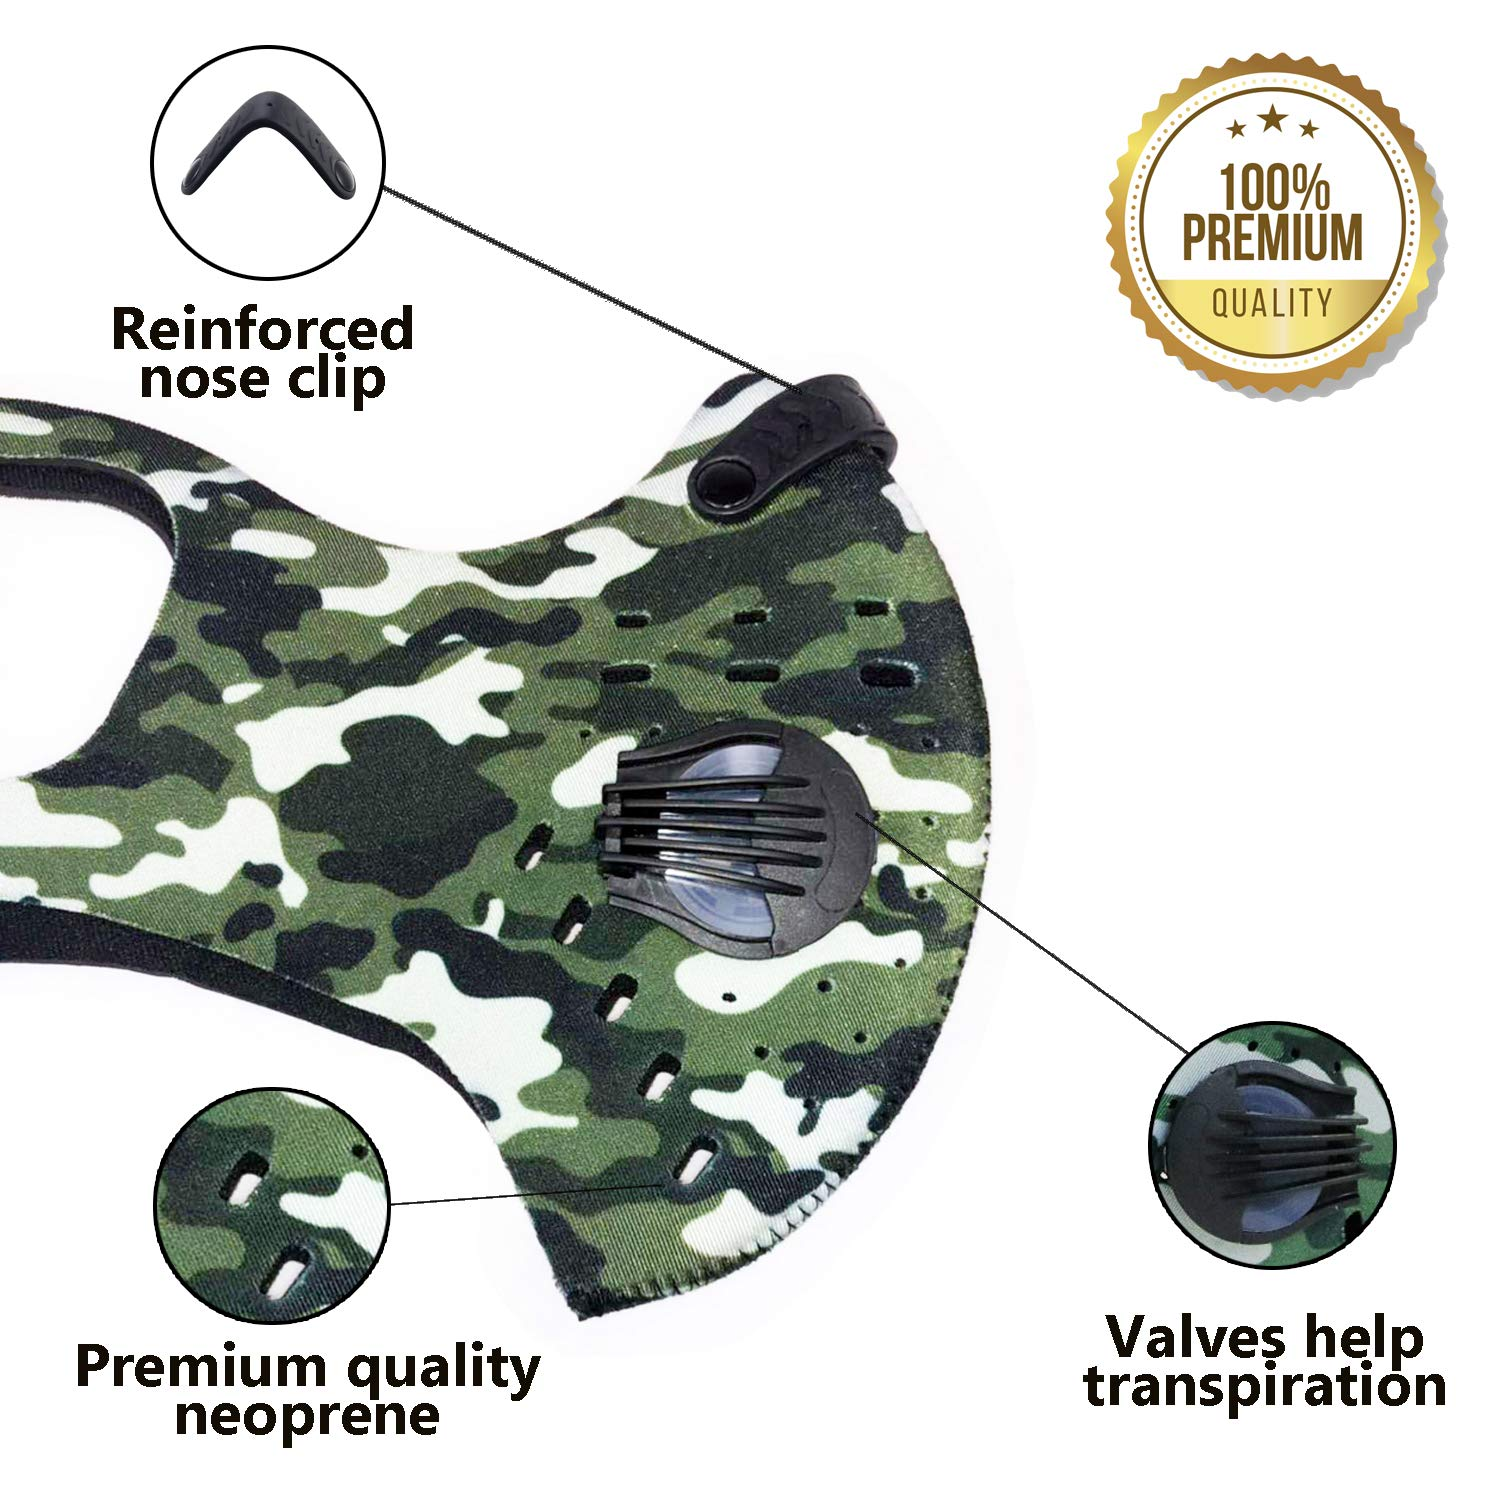 Activated Carbon Dust Mask for Breathing Clean Air, with Extra Filters, Excellent for Cycling, Running, No more Exhaust Gas, Dustproof, Anti Allergy and Pollution, PM2.5 N99, Outdoor Activities (Camo) by AirShielz (Image #2)